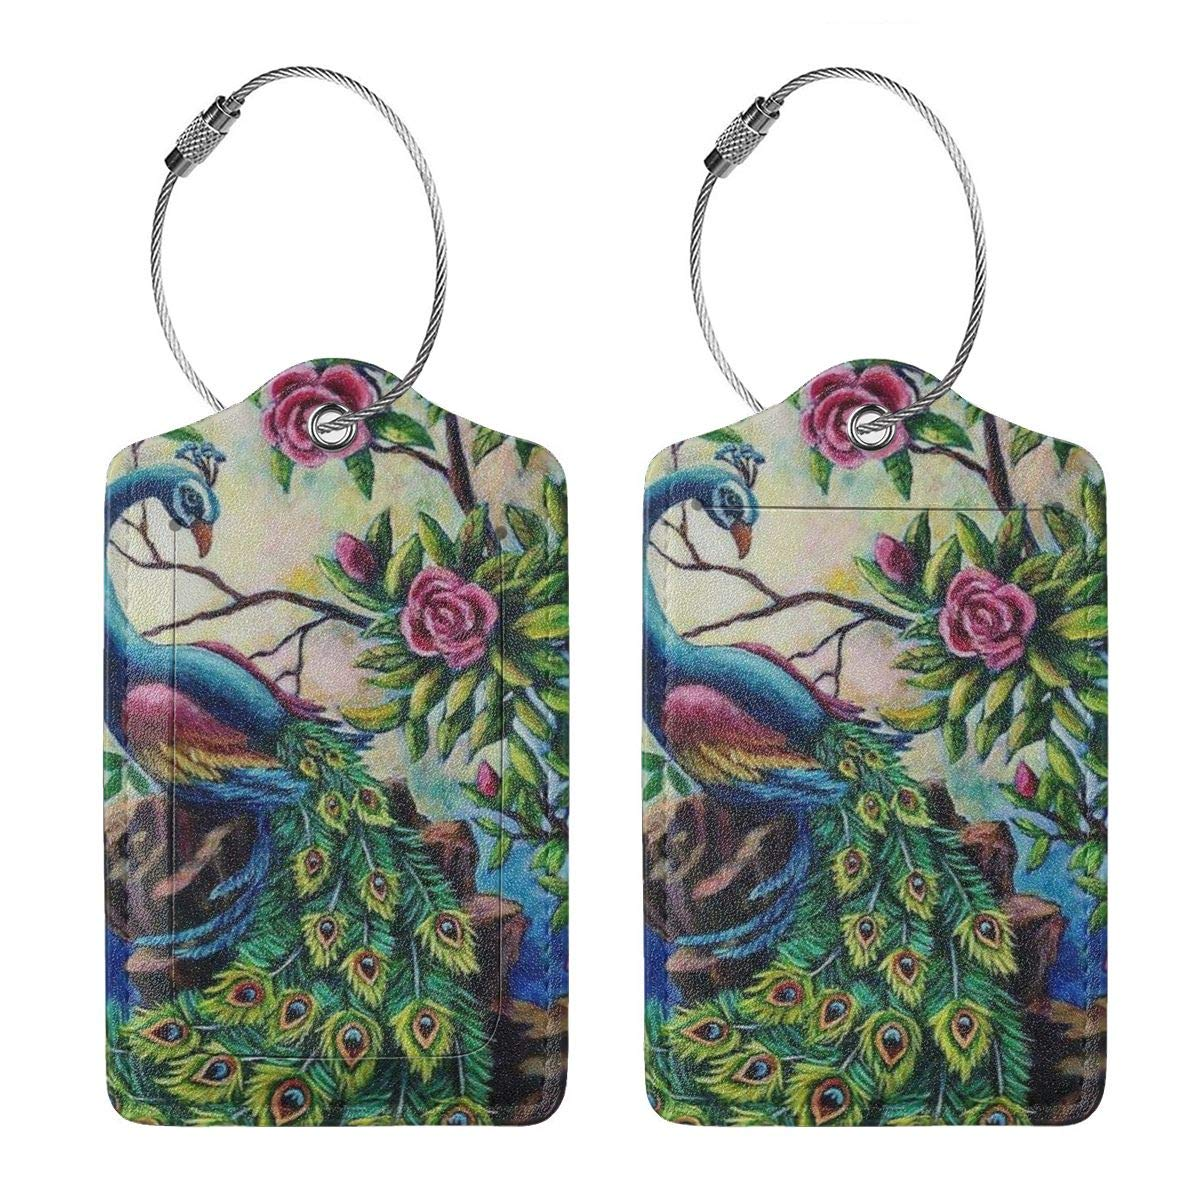 Vintage Peacock Feather Tail Rose Leather Luggage Tags Personalized Travel Accessories With Adjustable Strap